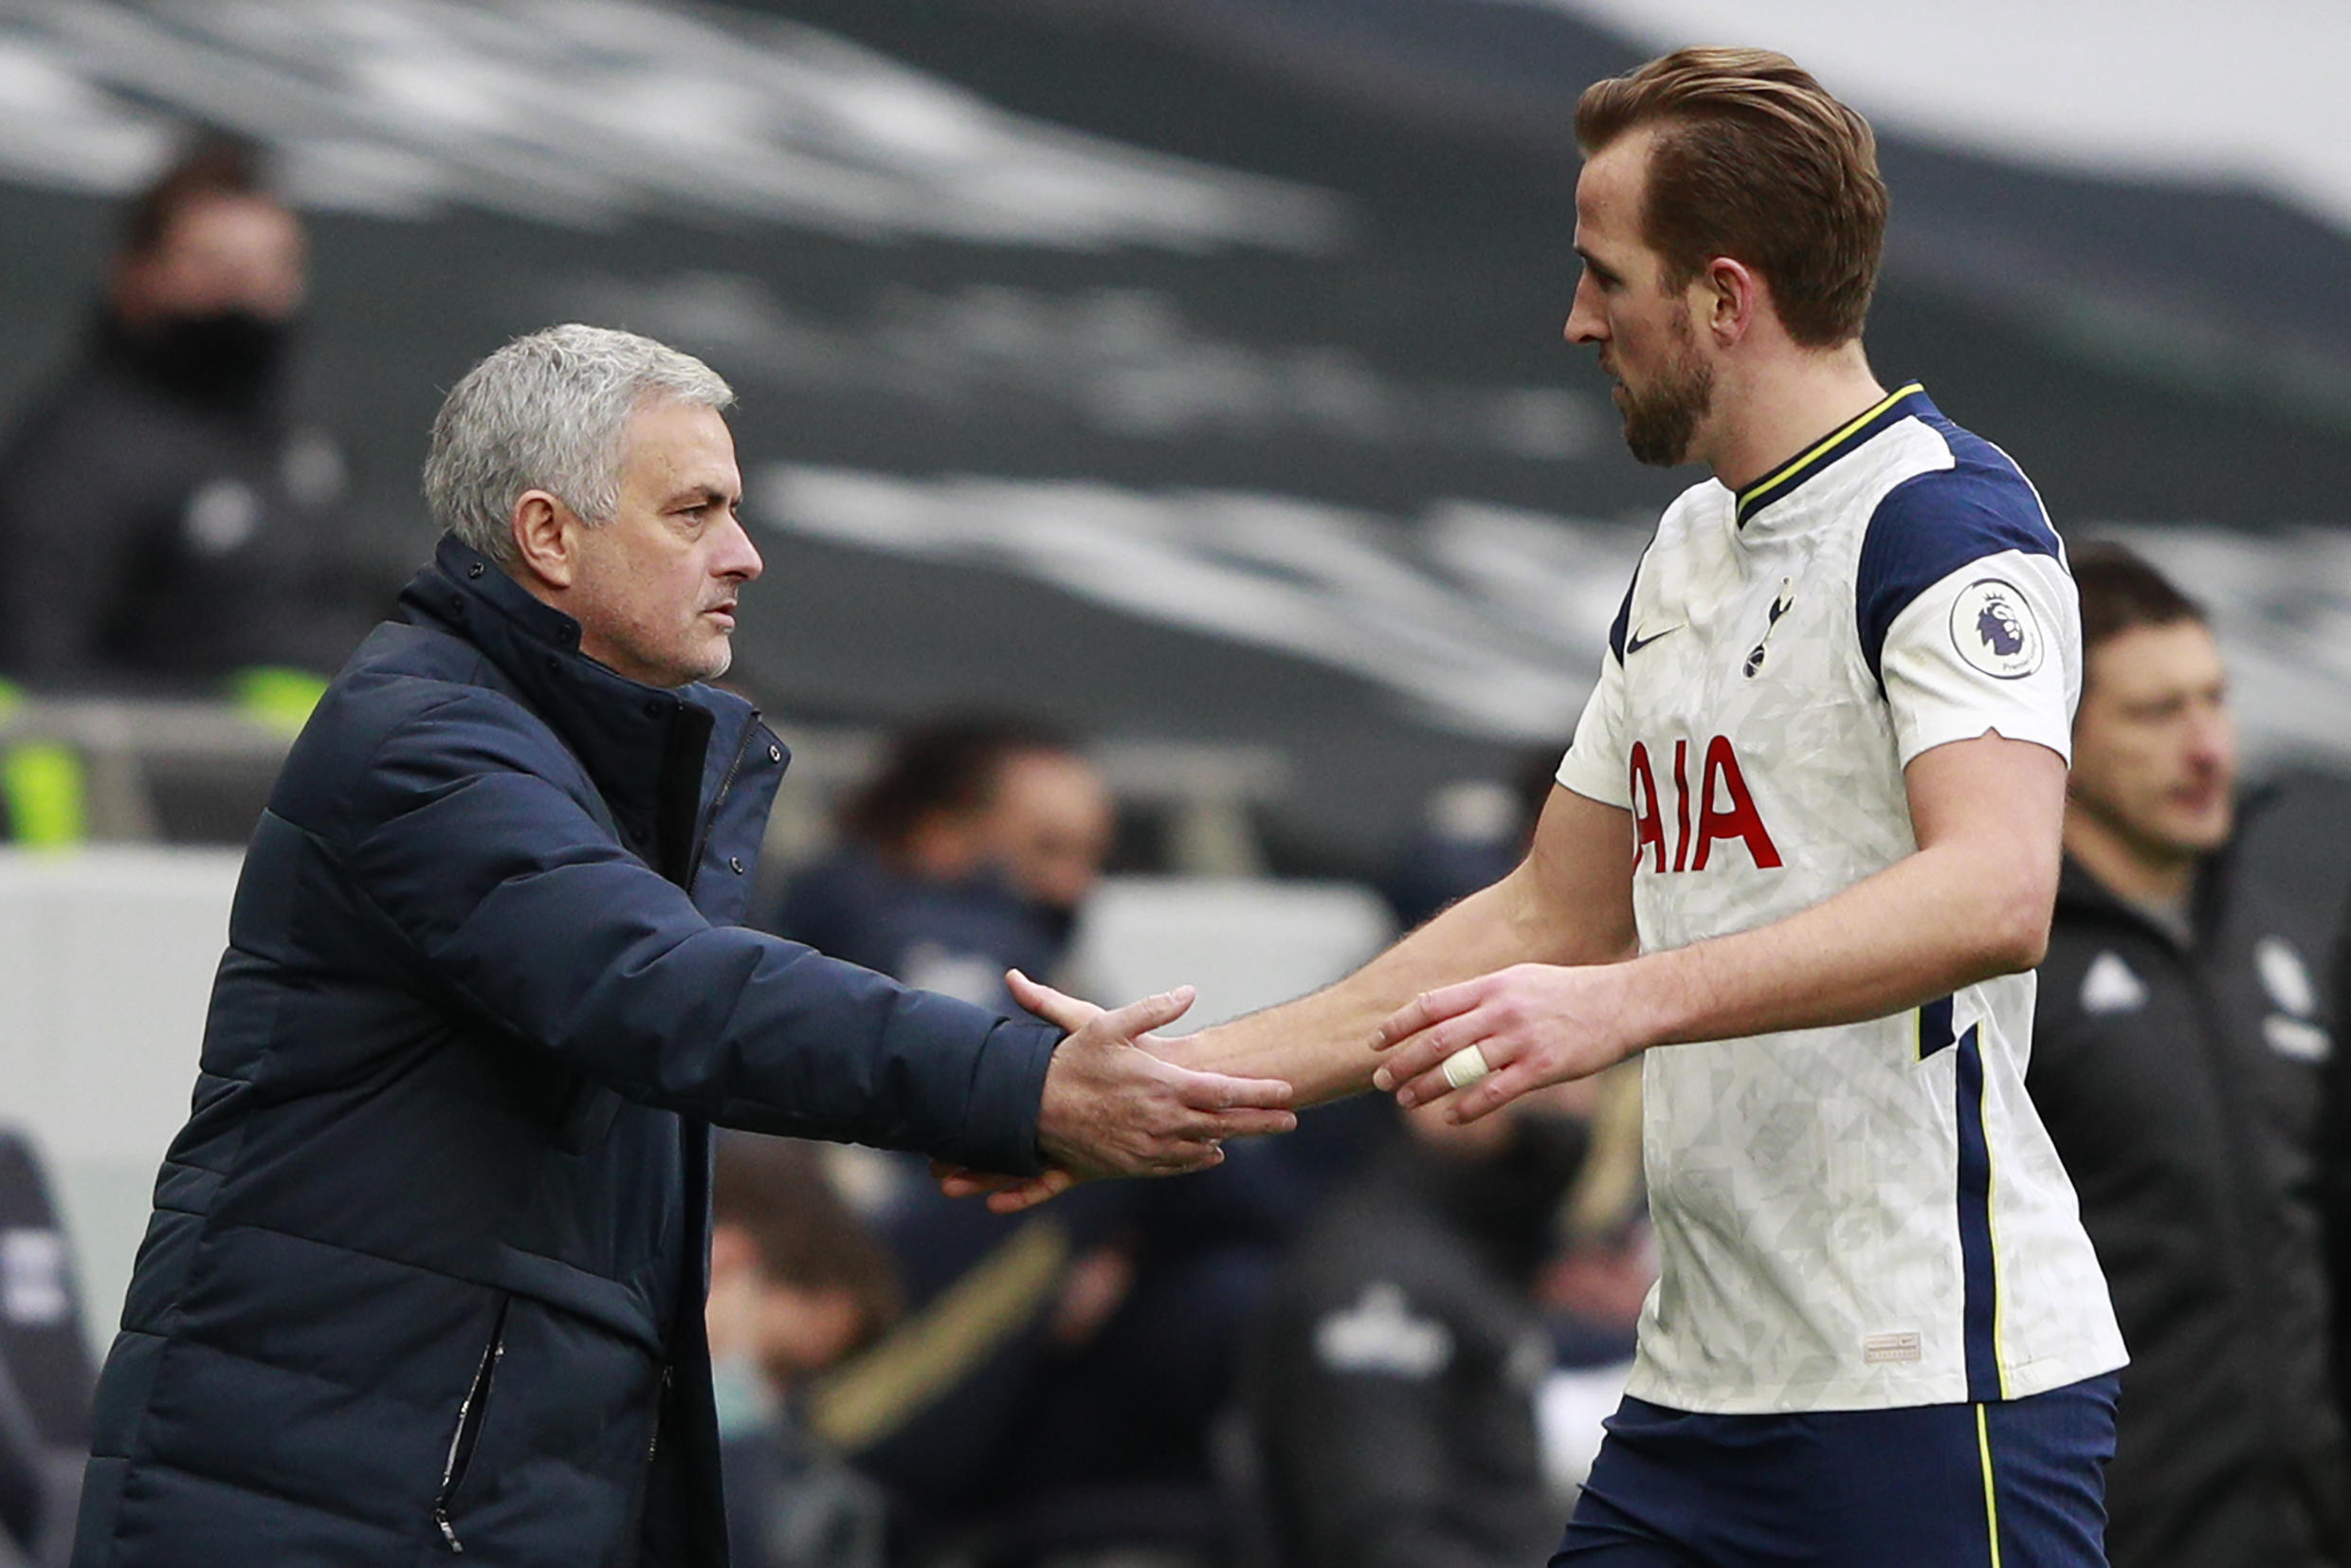 Jose Mourinho says he will not play the game of speculating over Tottenham Hotspur captain Harry Kane's future after being linked with Manchester City